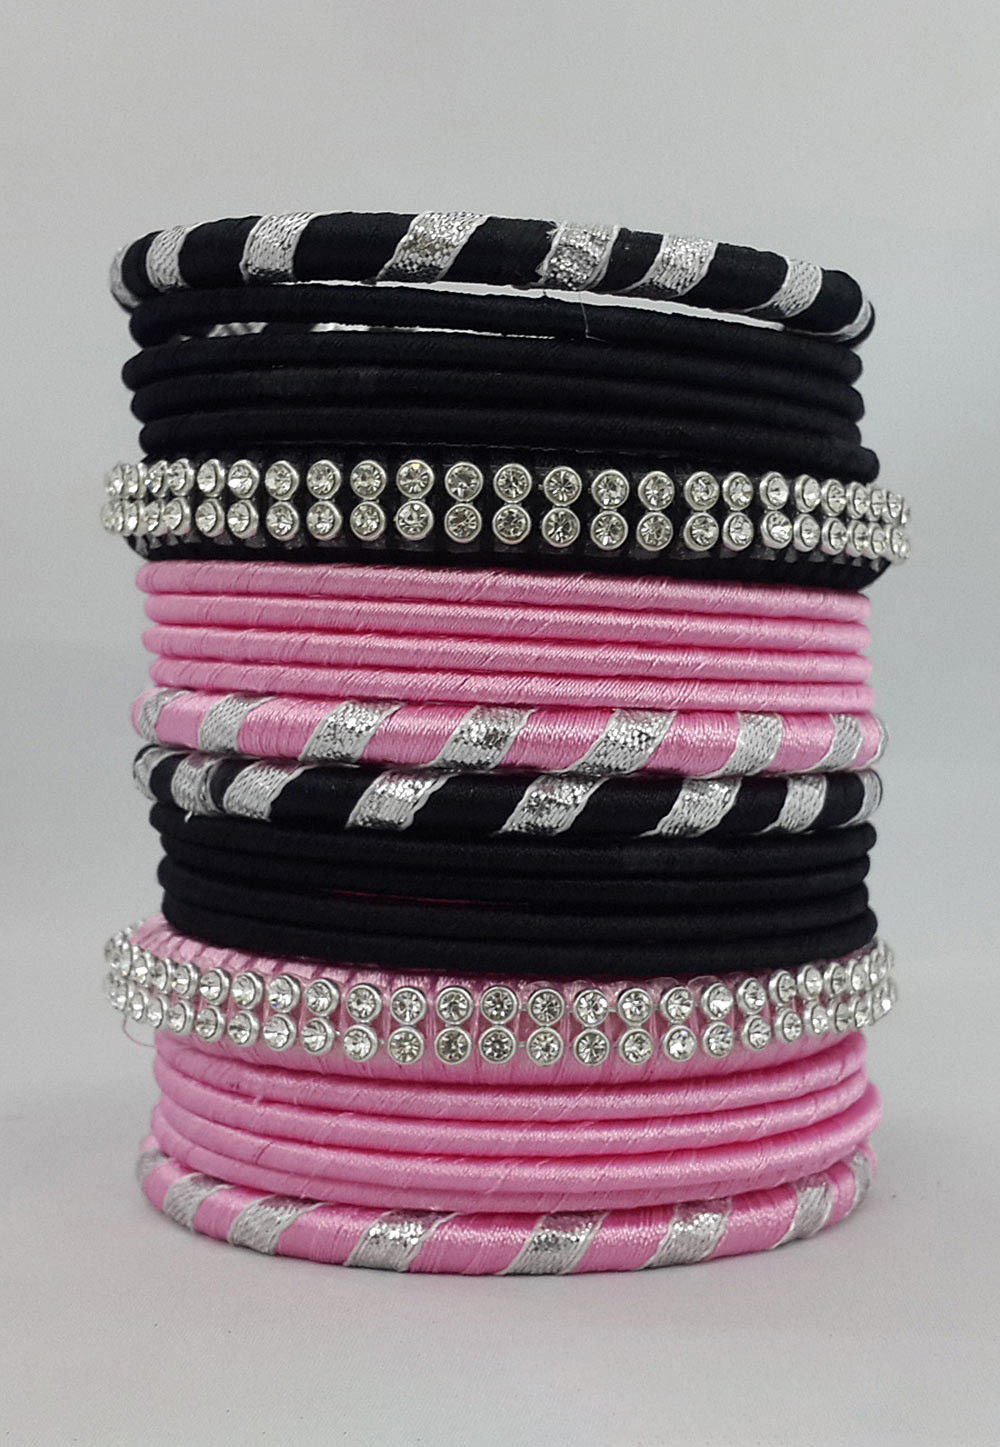 Gota Lace Bangle Set in Black and Pink